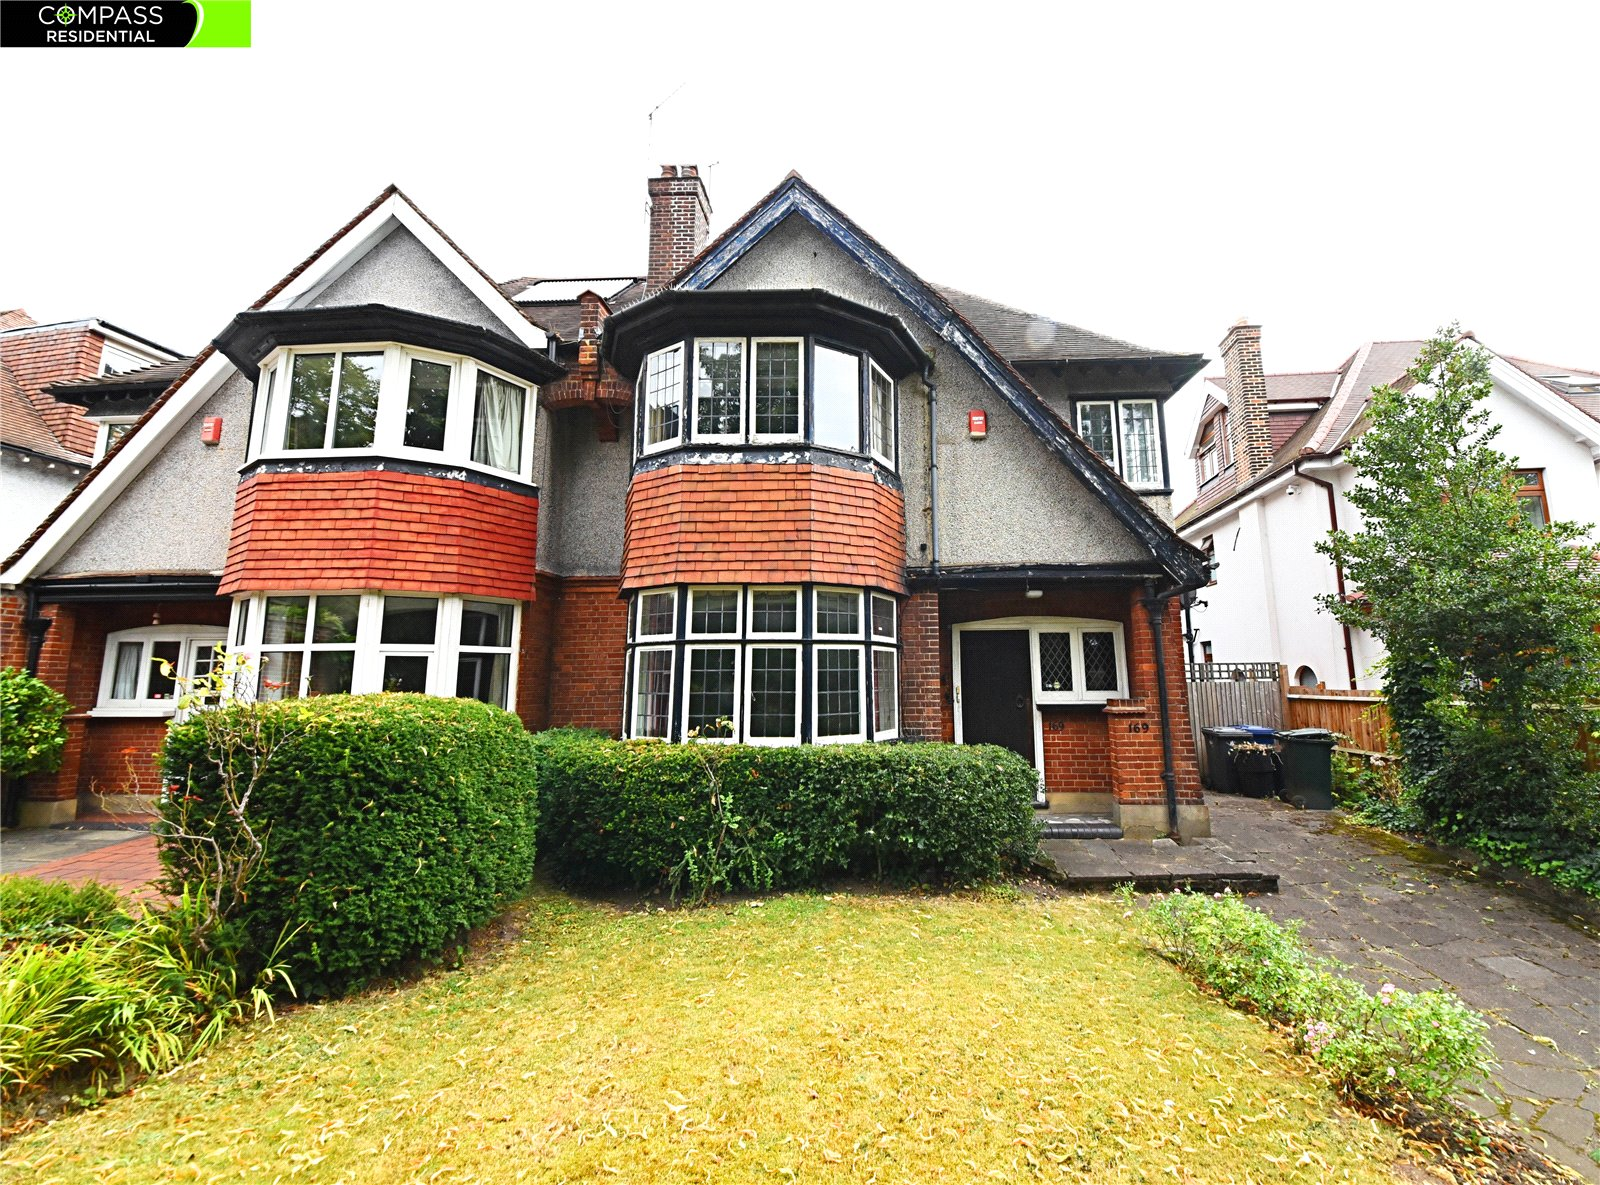 6 bed house for sale in Whetstone, N20 0NN - Property Image 1